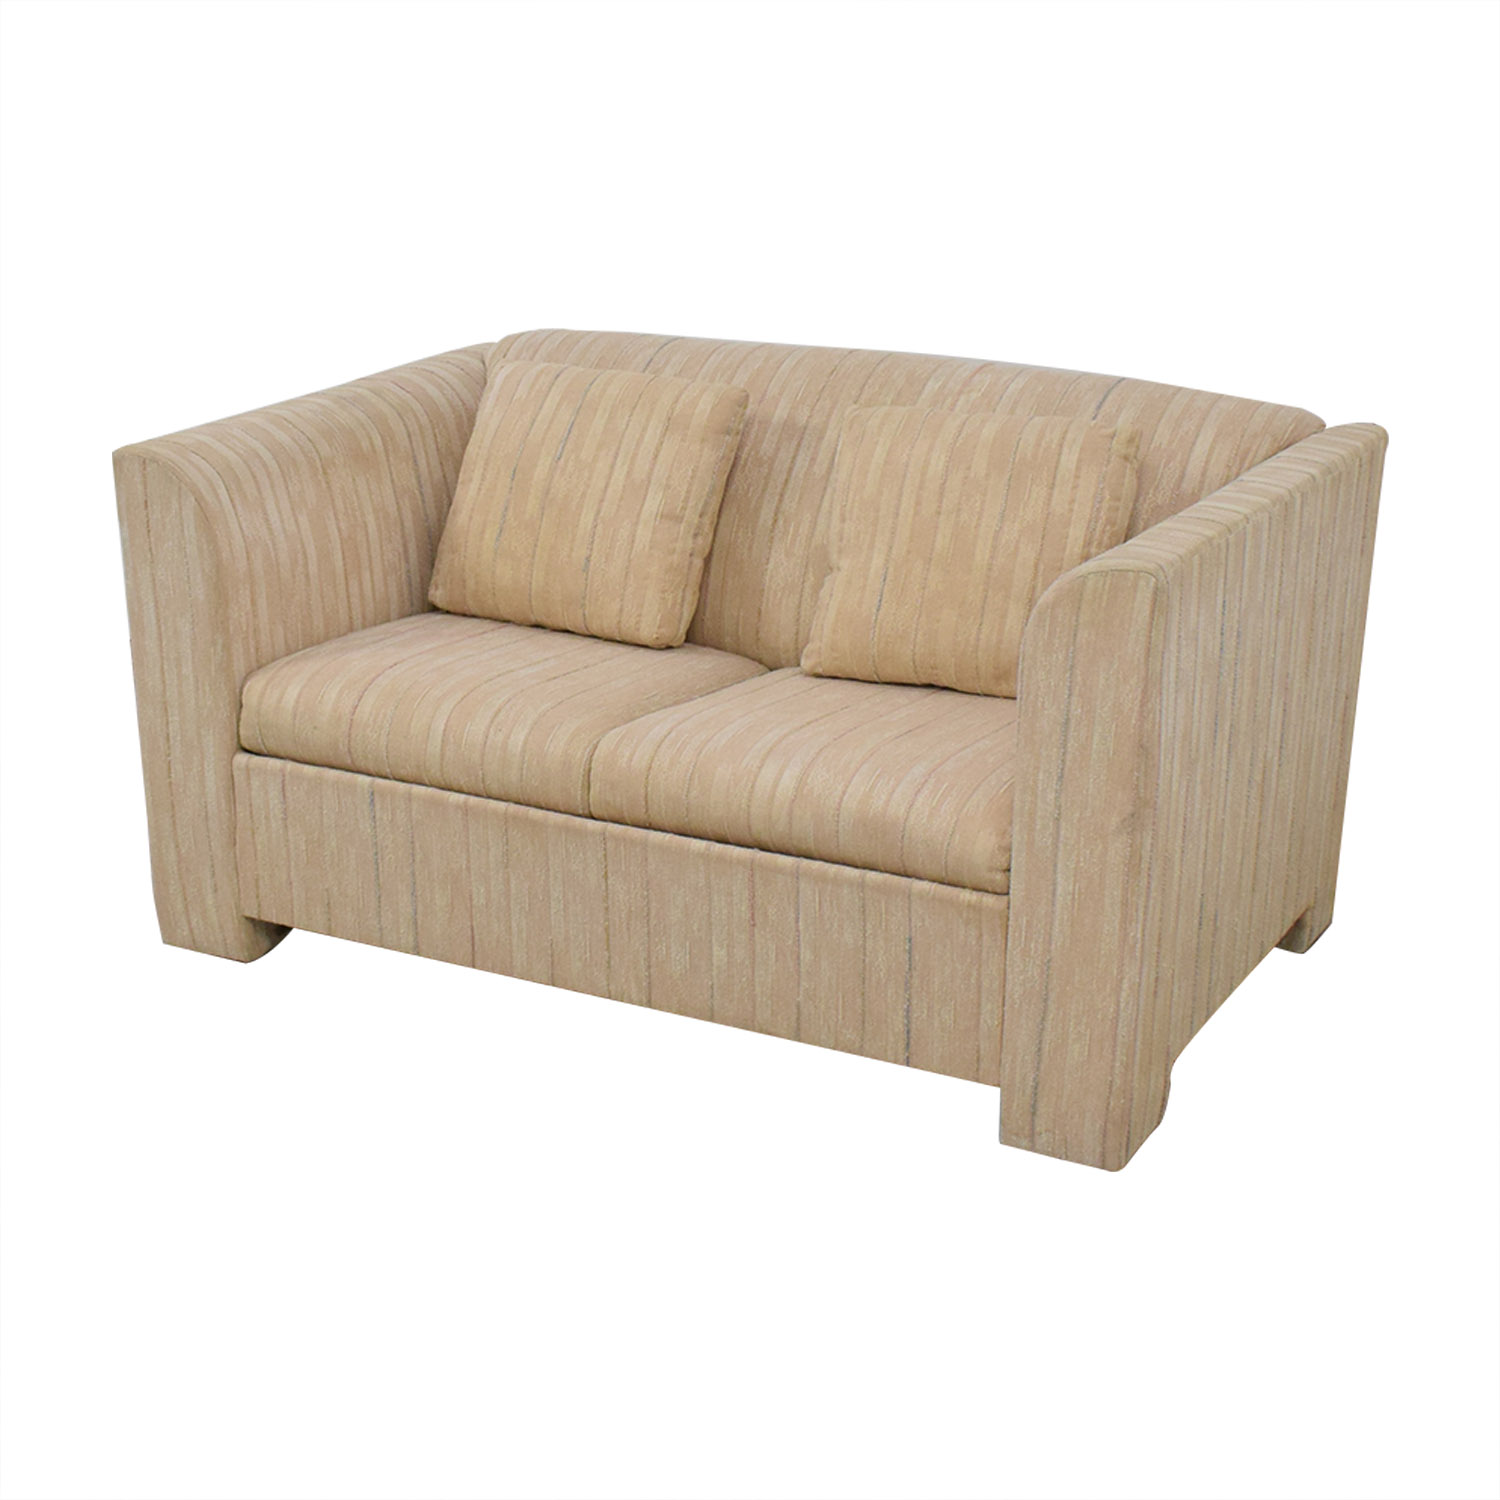 Sealy Furniture Twin Sleeper Loveseat / Loveseats